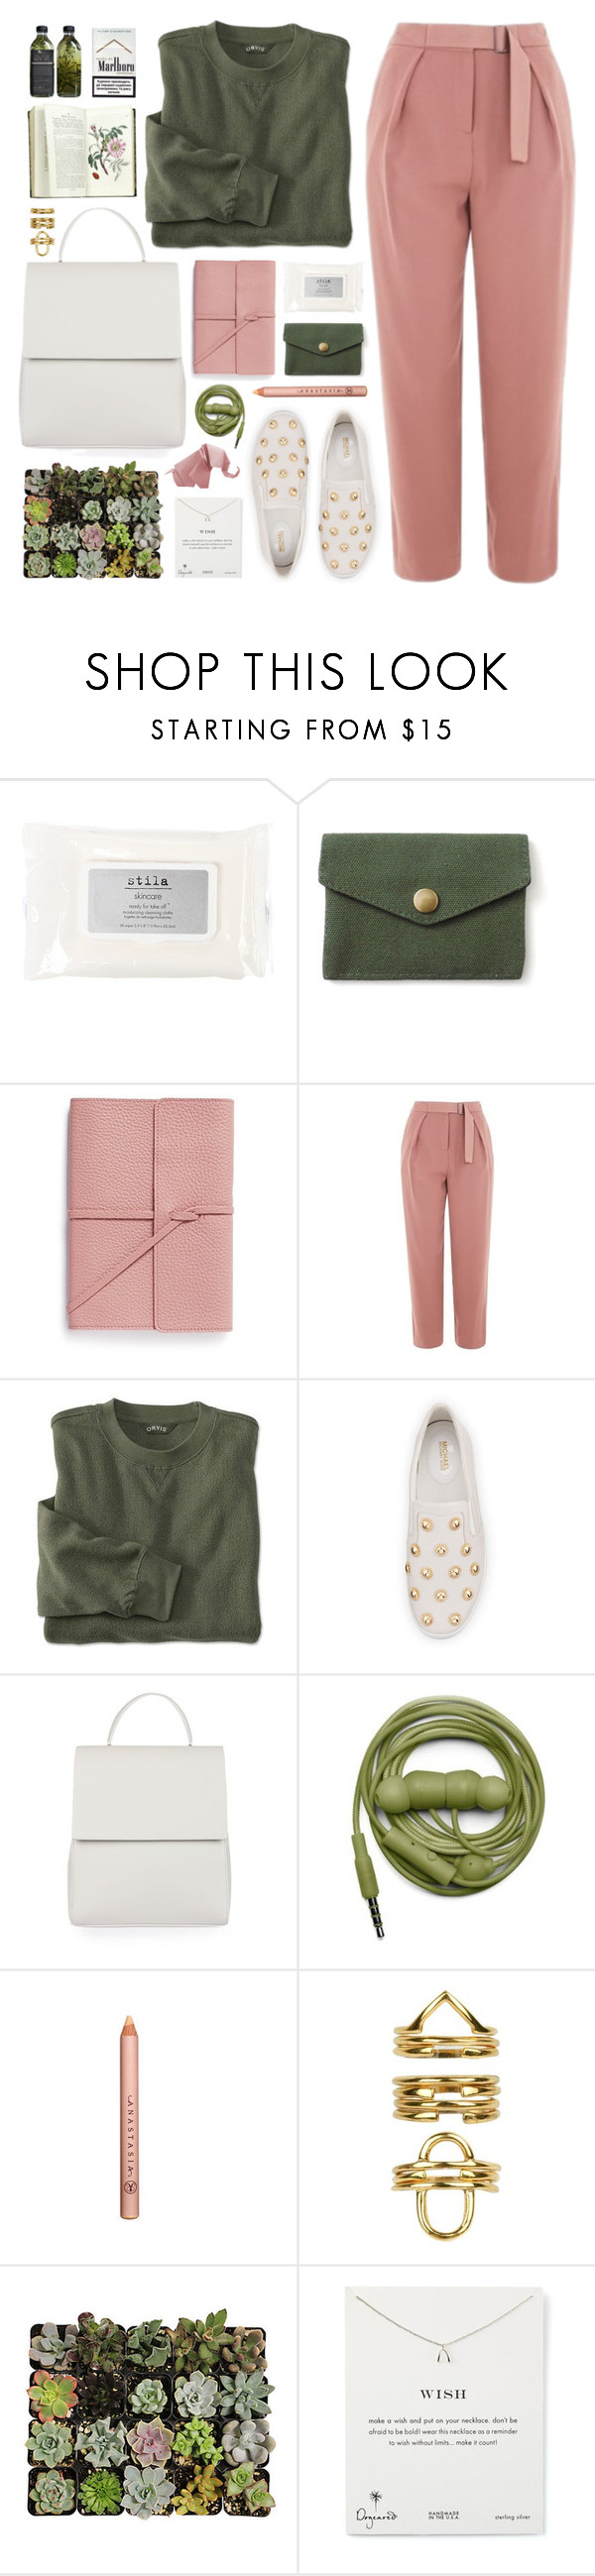 """030417"" by rosemarykate ❤ liked on Polyvore featuring Stila, Bynd Artisan, Topshop, MICHAEL Michael Kors, Urbanears, Anastasia, Bowie, Shop Succulents and Dogeared"